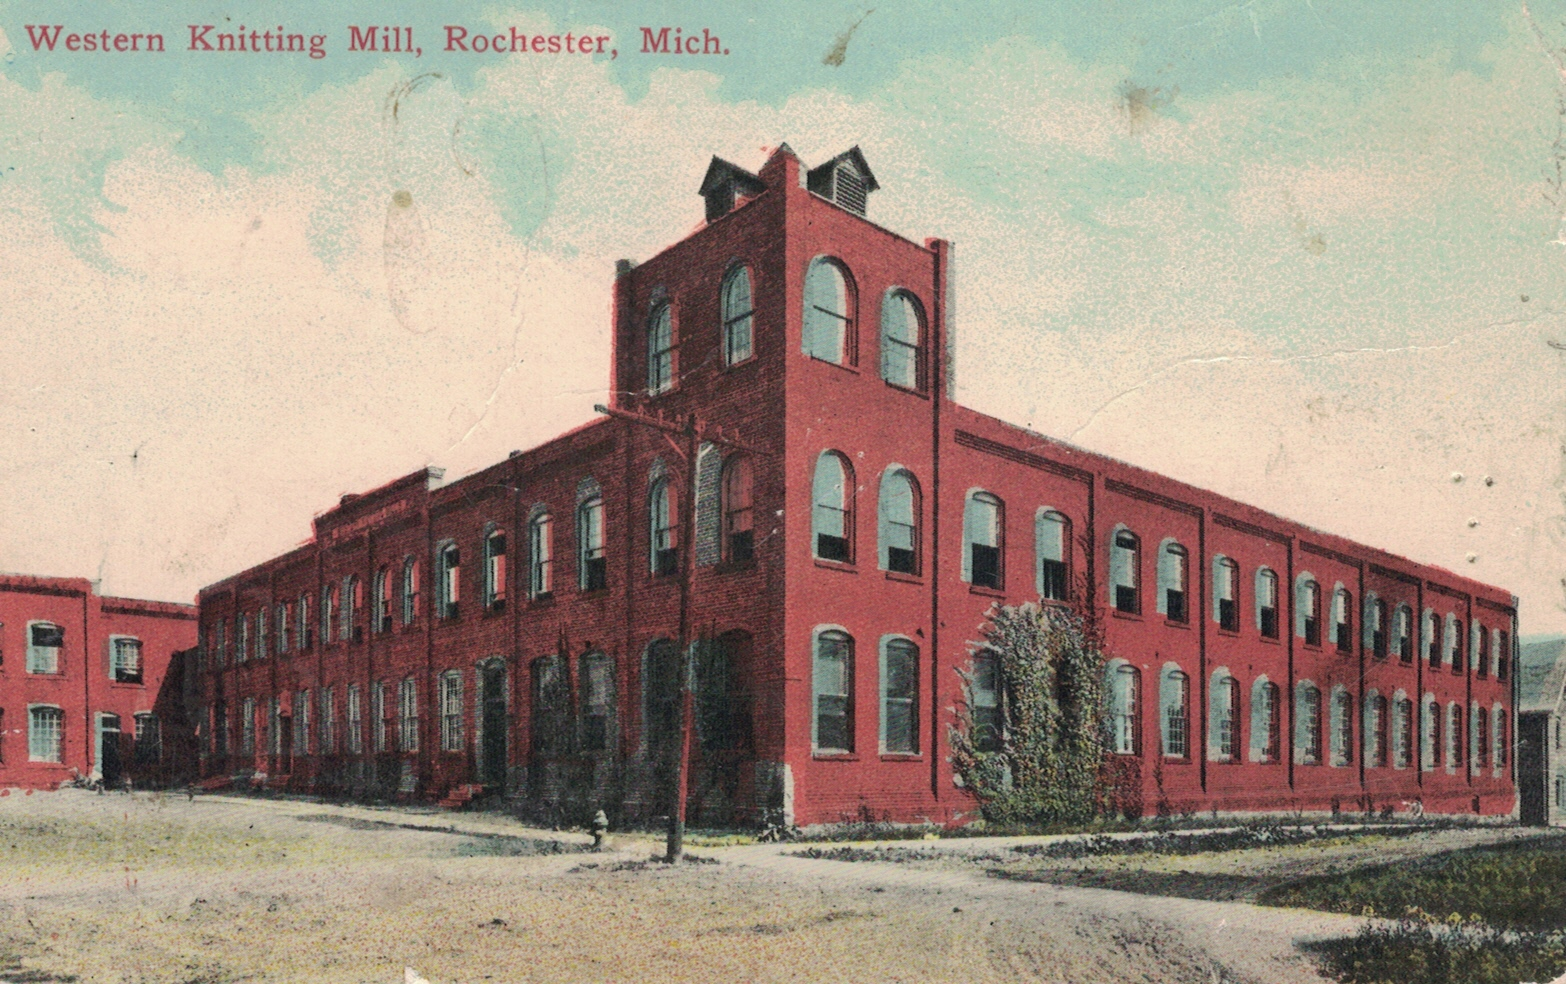 Western Knitting Mills, north and west elevations, ca. 1912